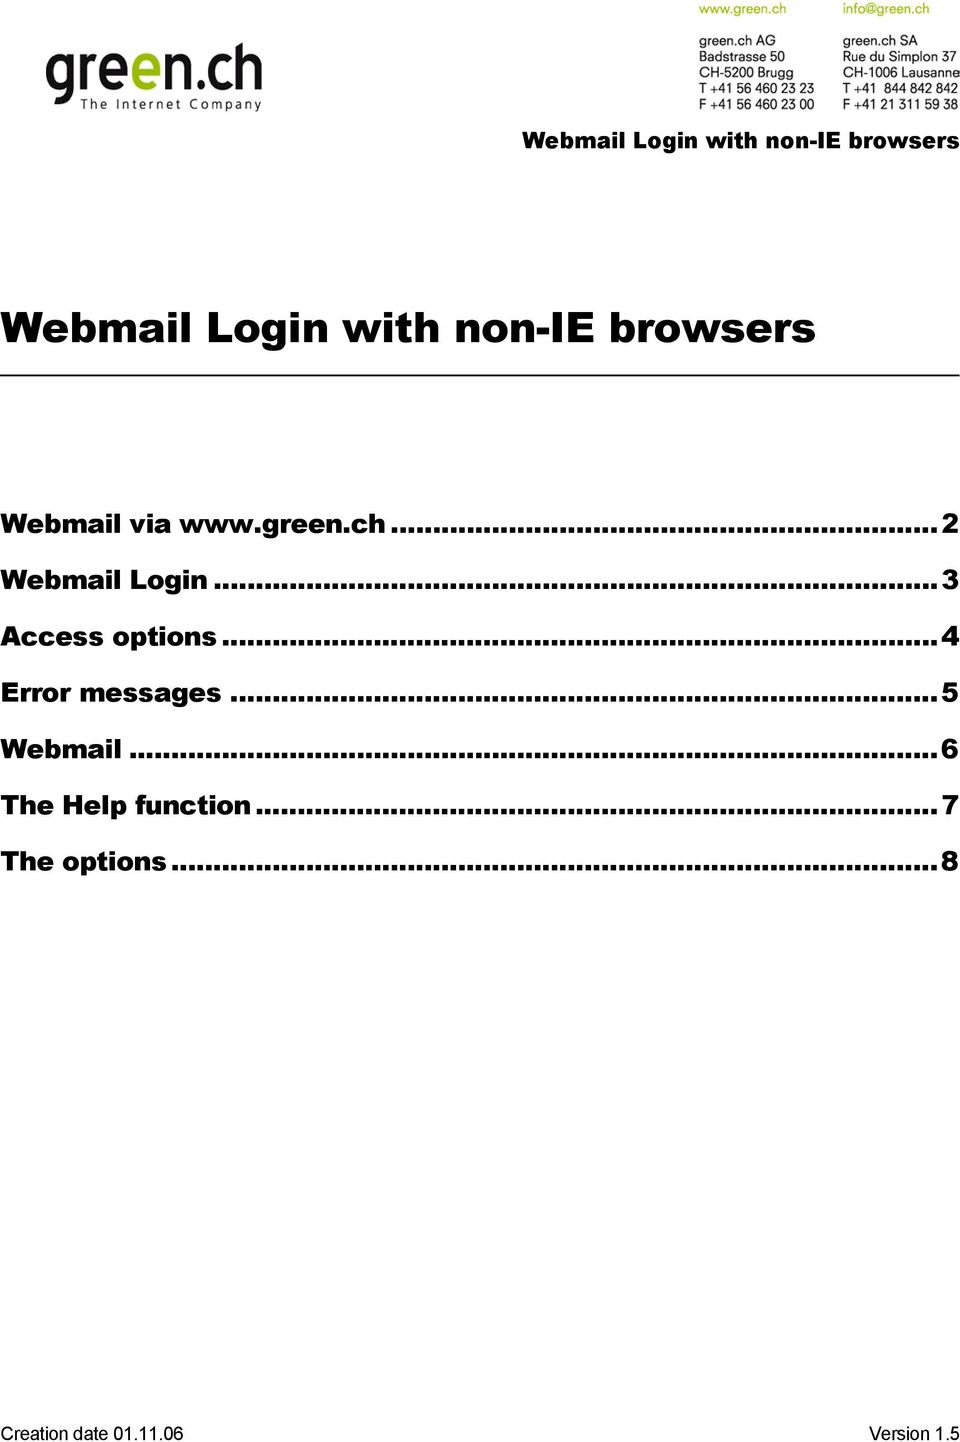 Webmail Login with non-ie browsers - PDF